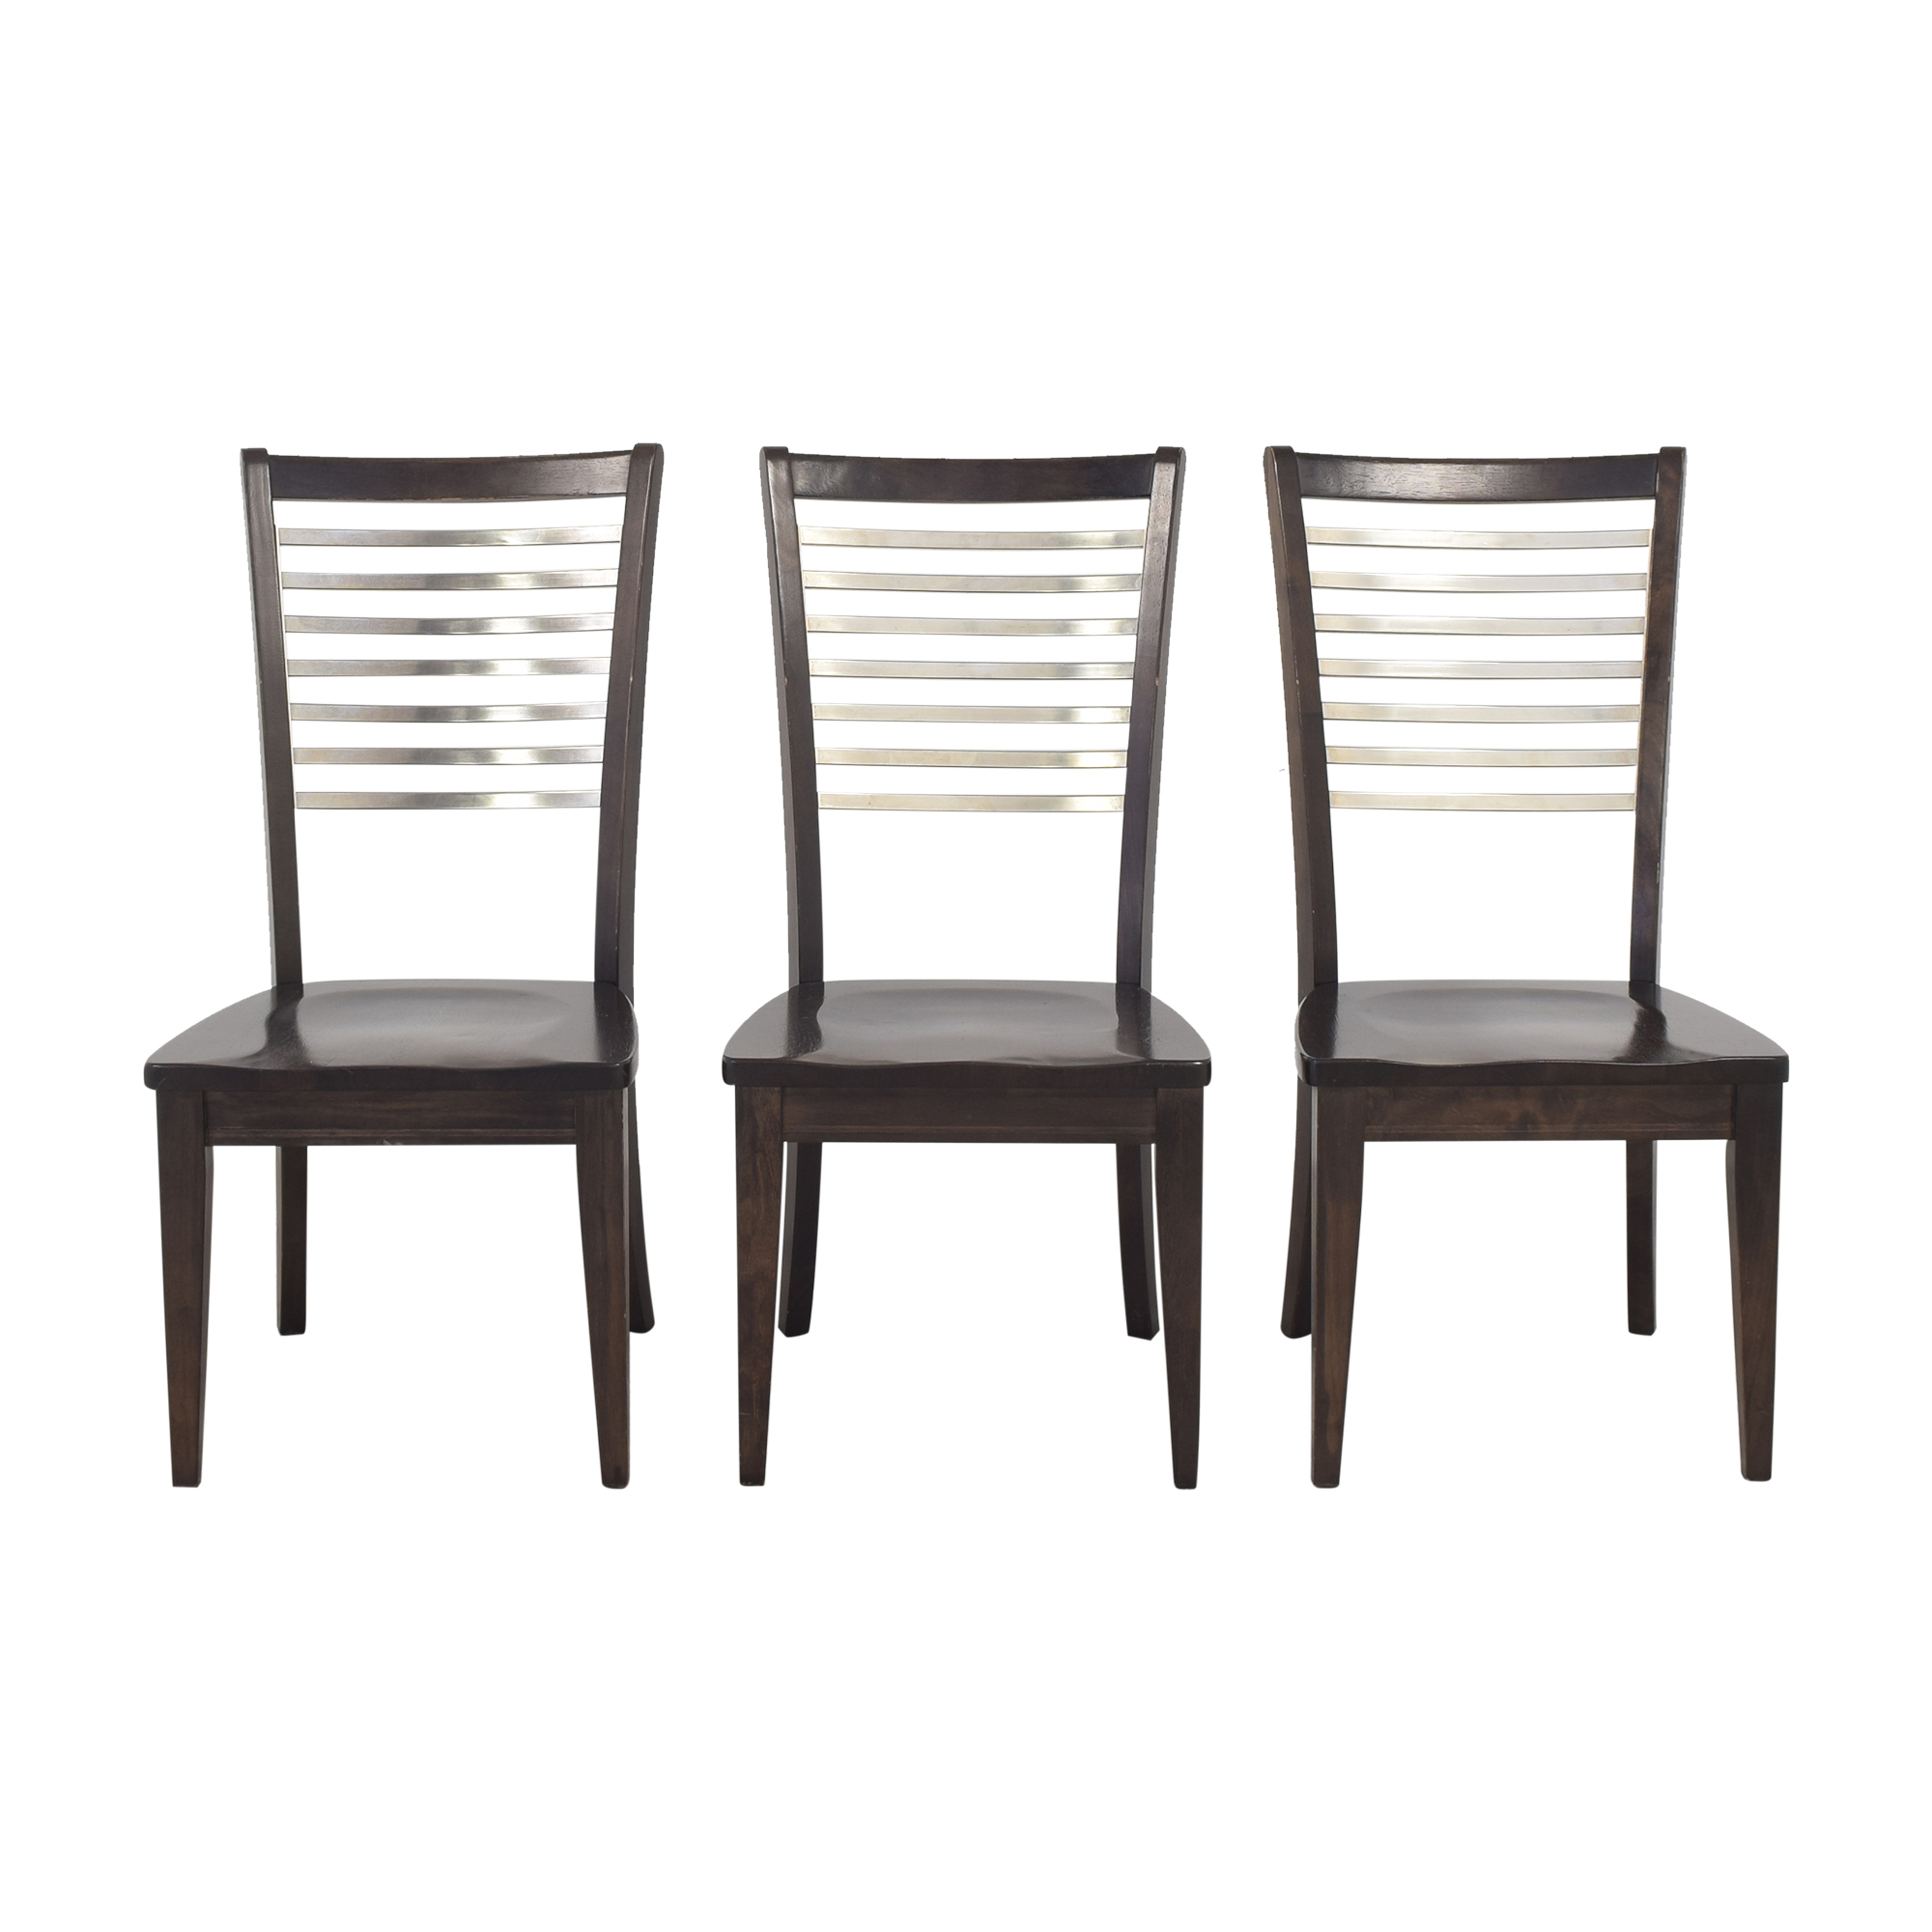 Bassett Furniture Bassett Furniture Dining Chairs on sale